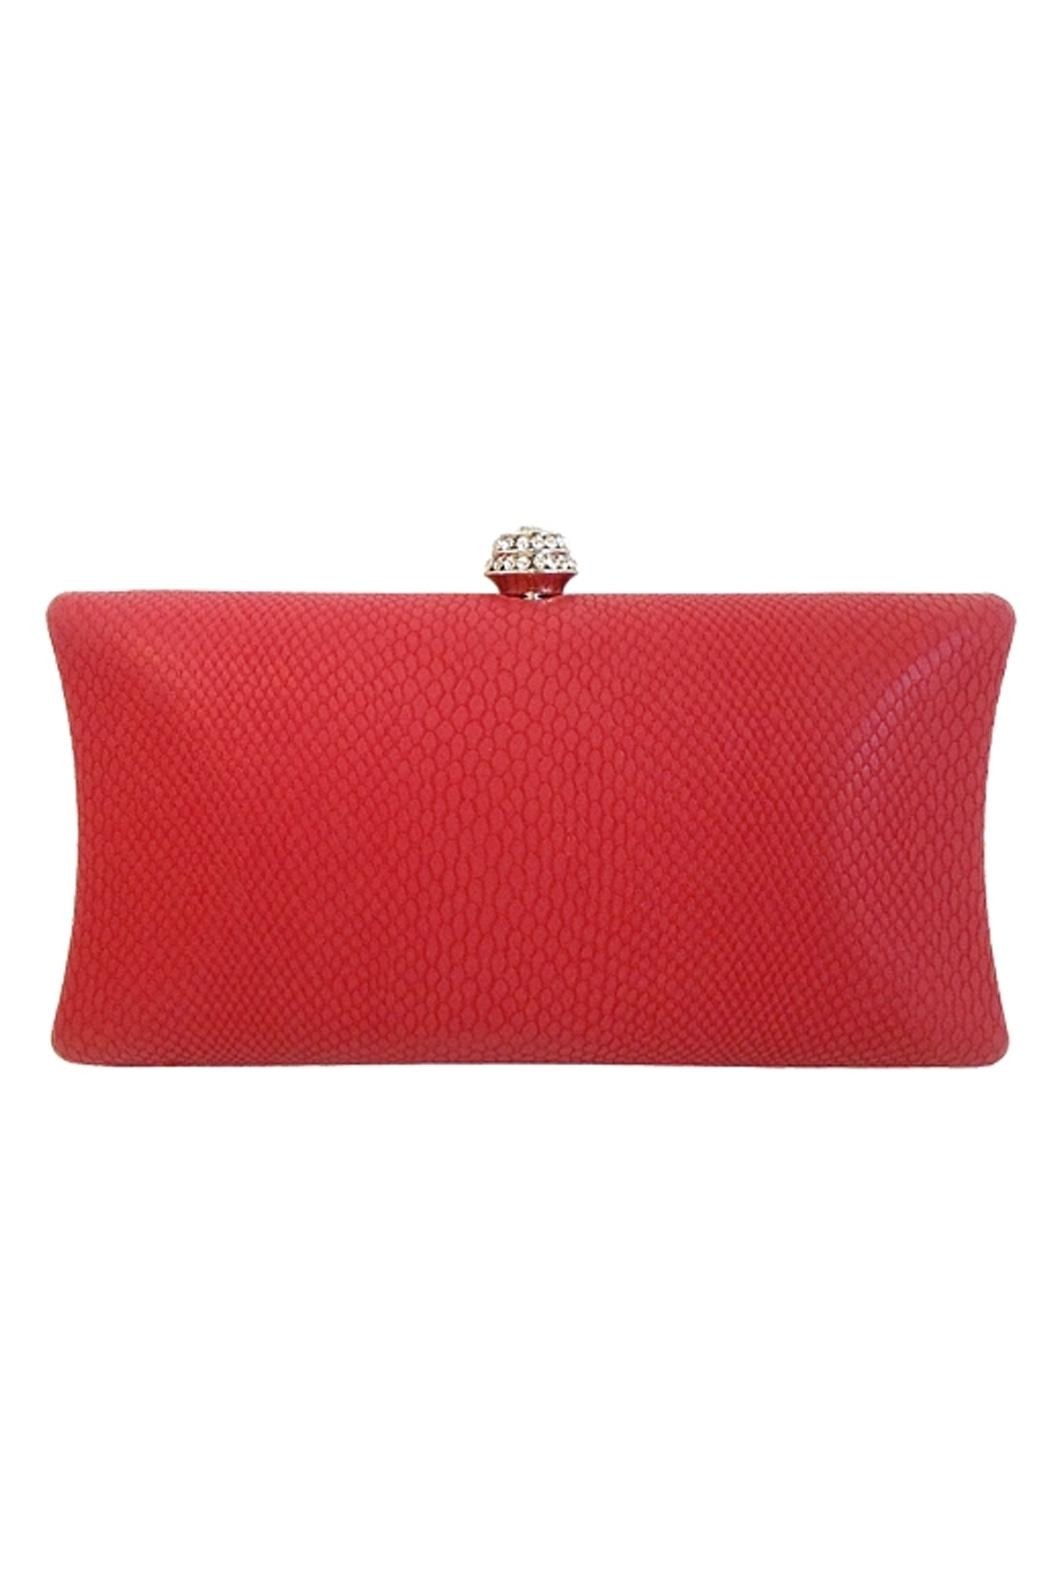 Wild Lilies Jewelry  Red Snakeskin Clutch - Front Full Image